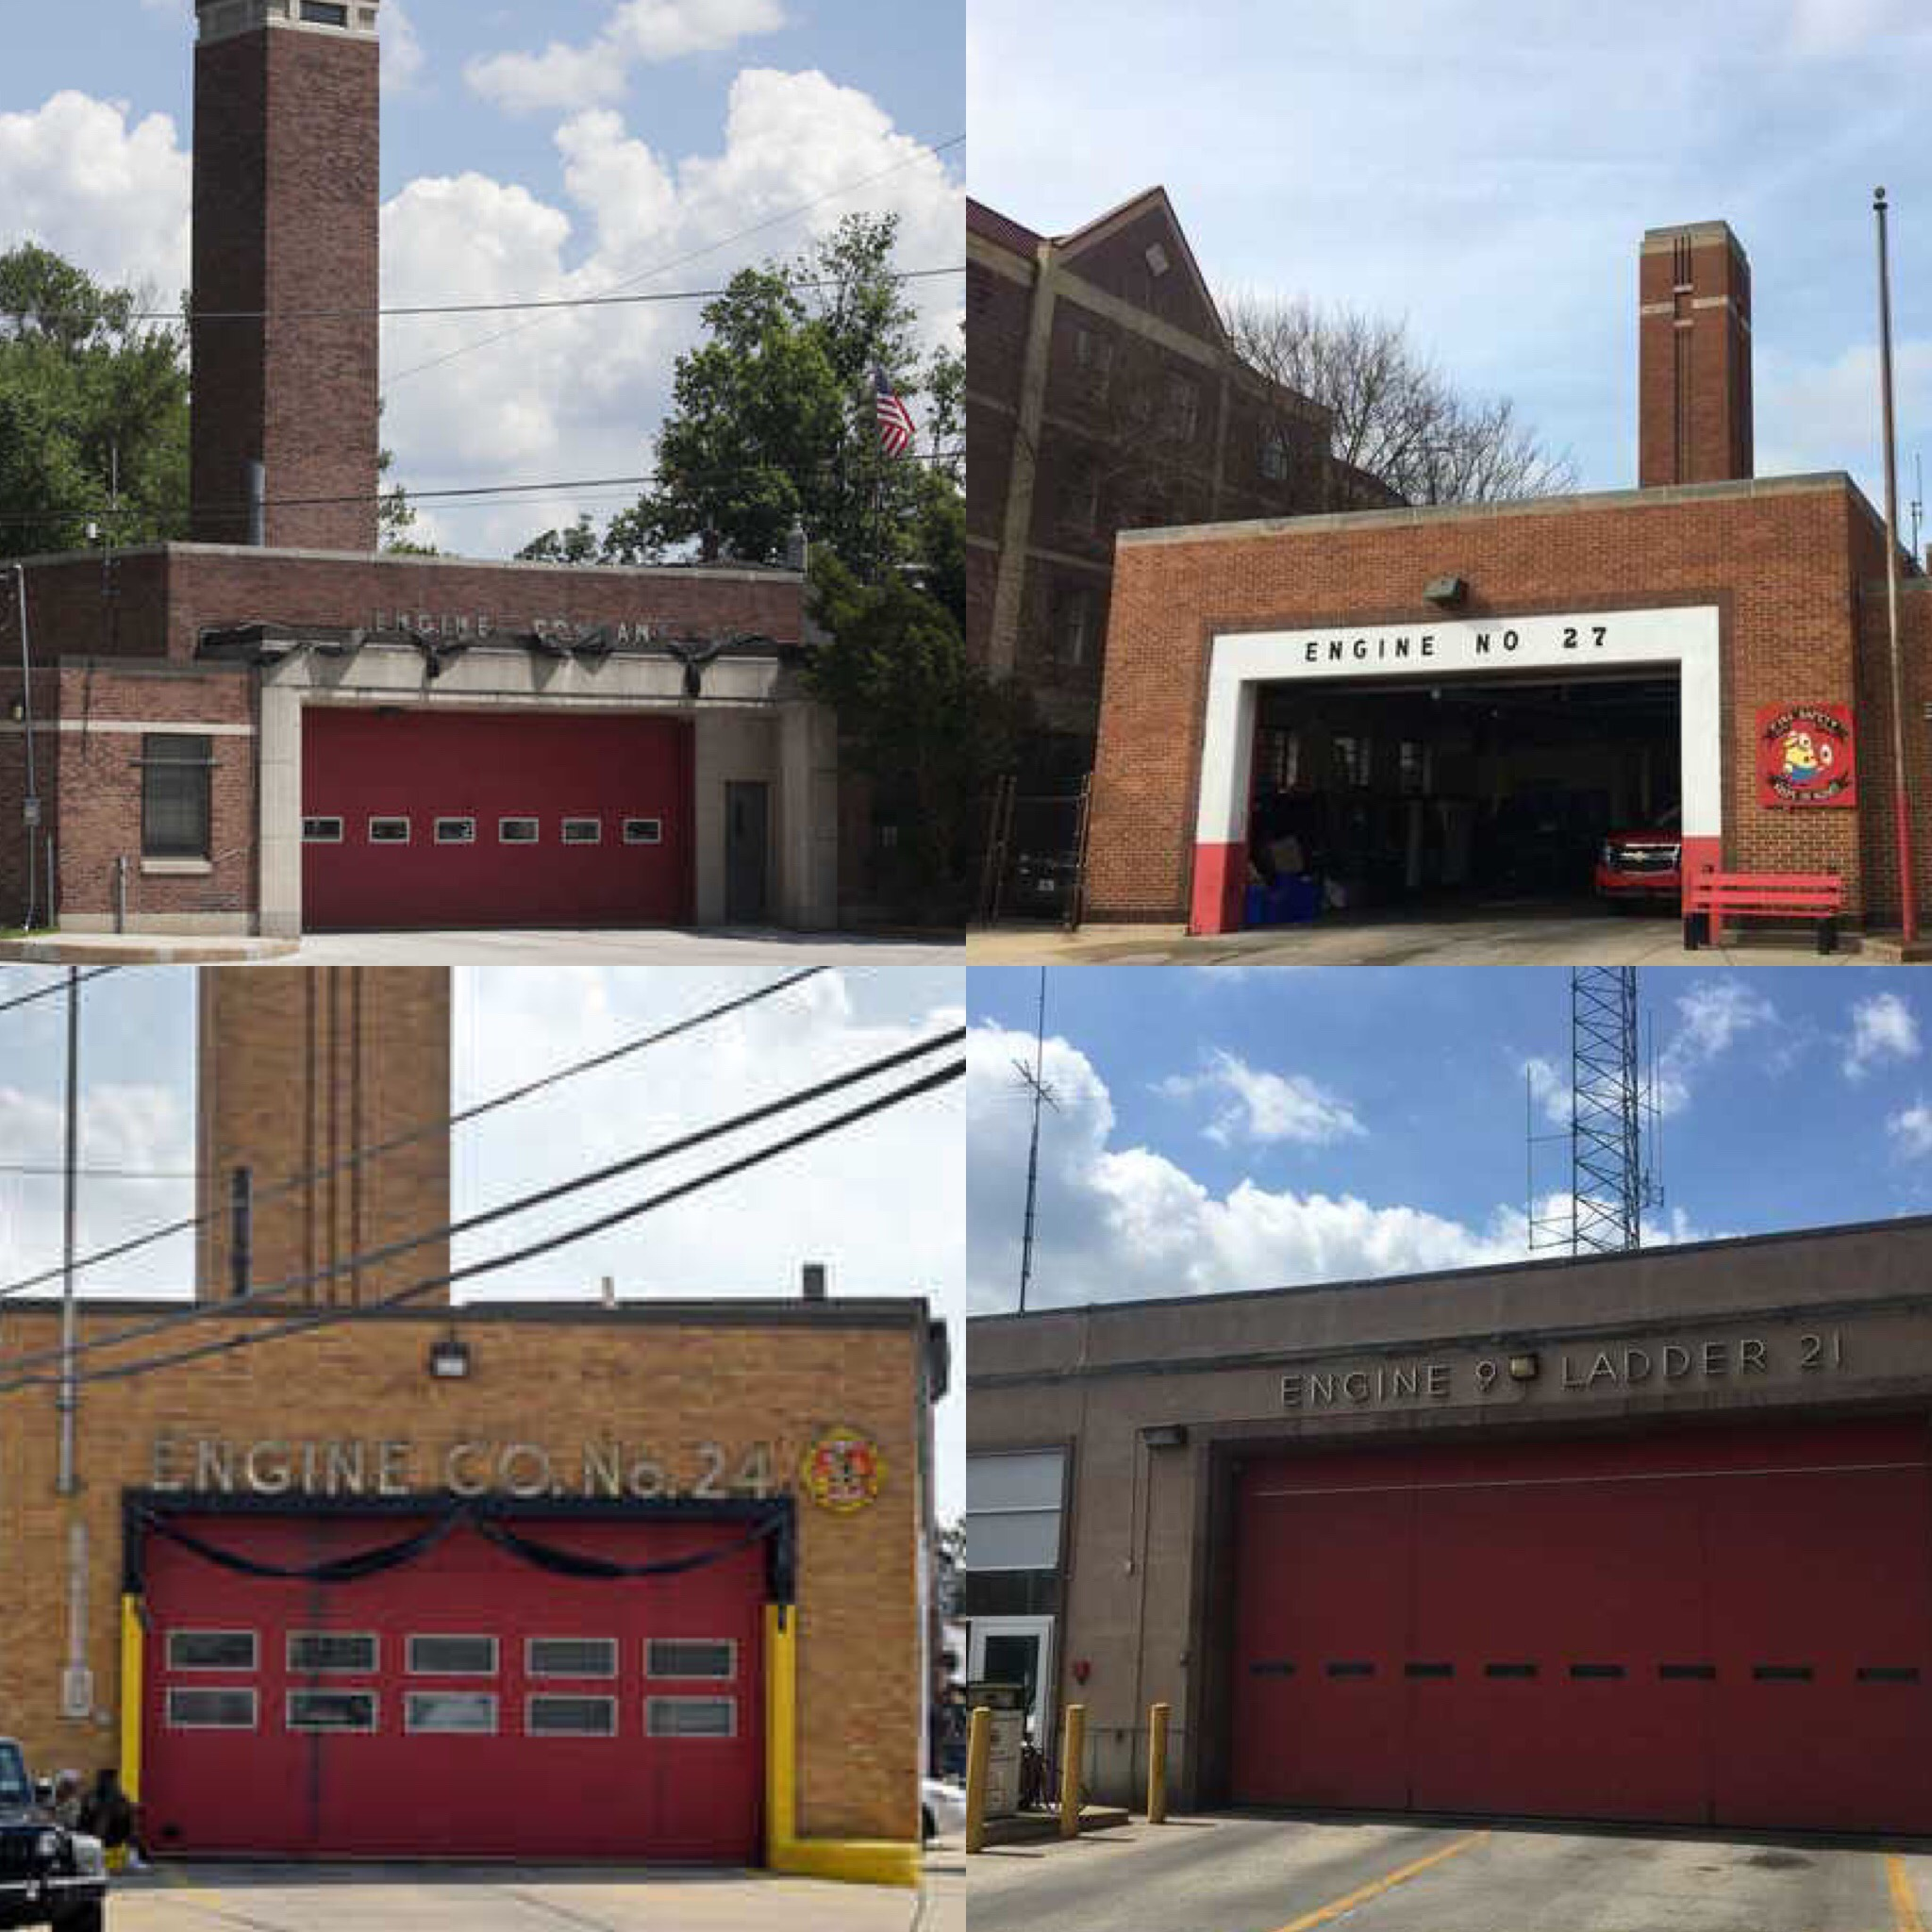 In an effort to modernize its fire department, Philadelphia went on a firehouse building spree in the 1950s. Most of the completed firehouses were based on the same modernist design by the city architct. This is a collage of four: Engine 52 in Wissonoming,Engine 27 in North Philadelphia, Engine 24 in Point Breeze and Engine 9 in Mount Airy.